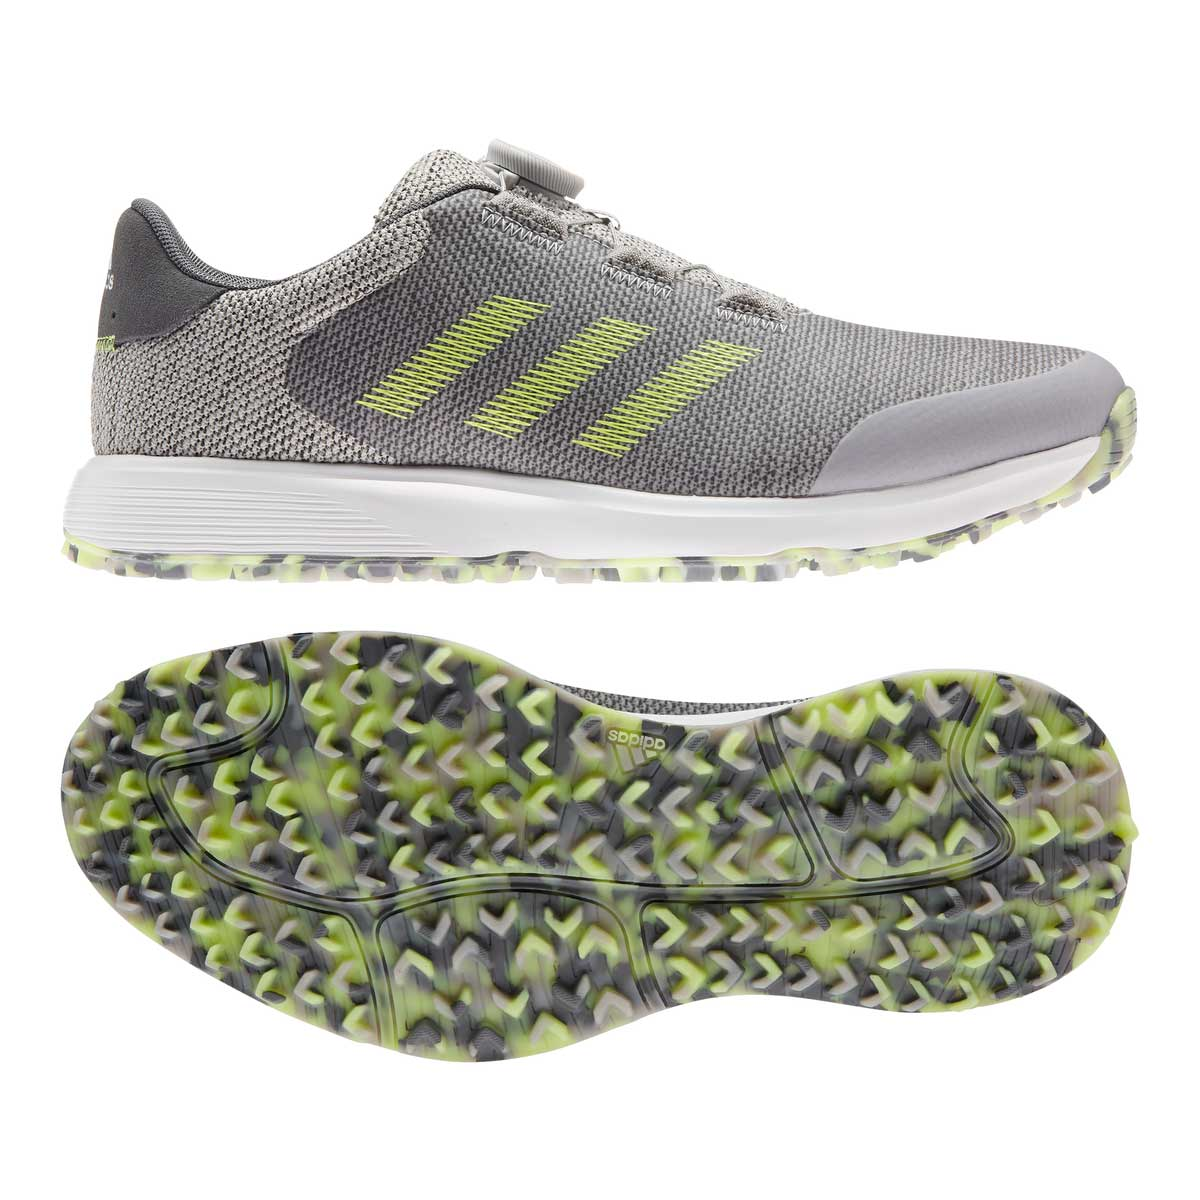 Adidas Men's S2G BOA Grey/Yellow Golf Shoe